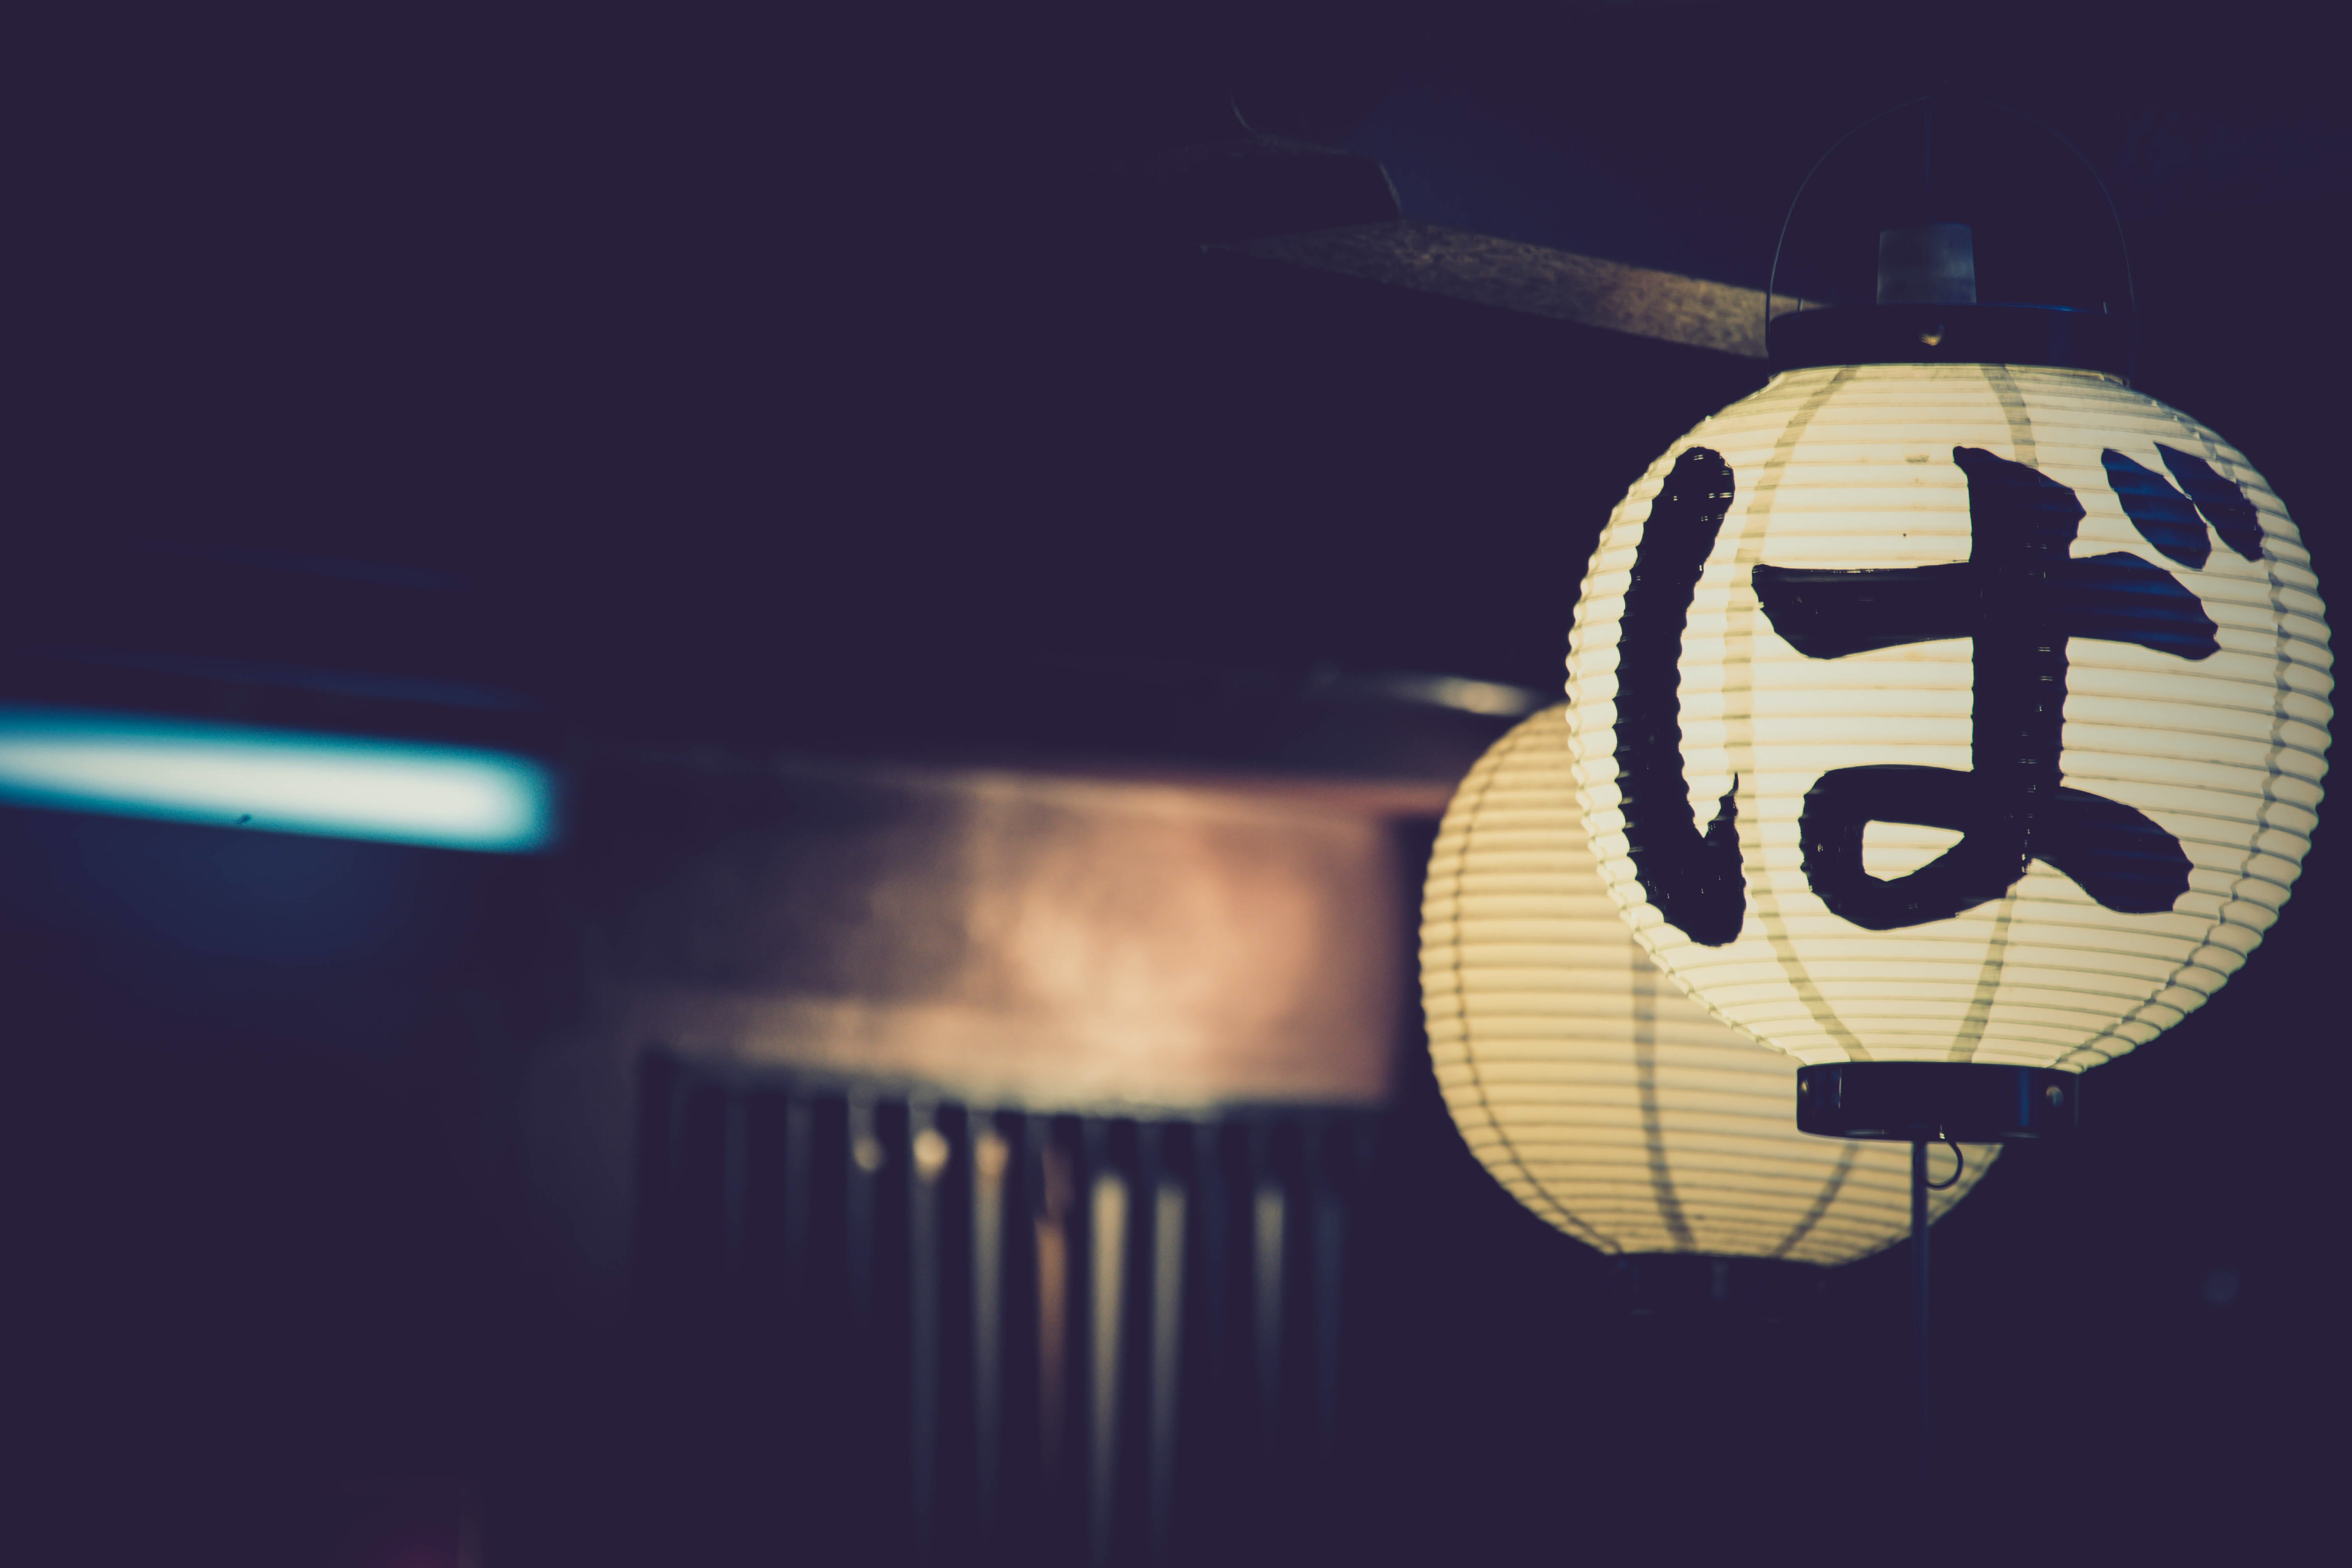 Two illuminated Japanese lanterns in a dark setting by a door